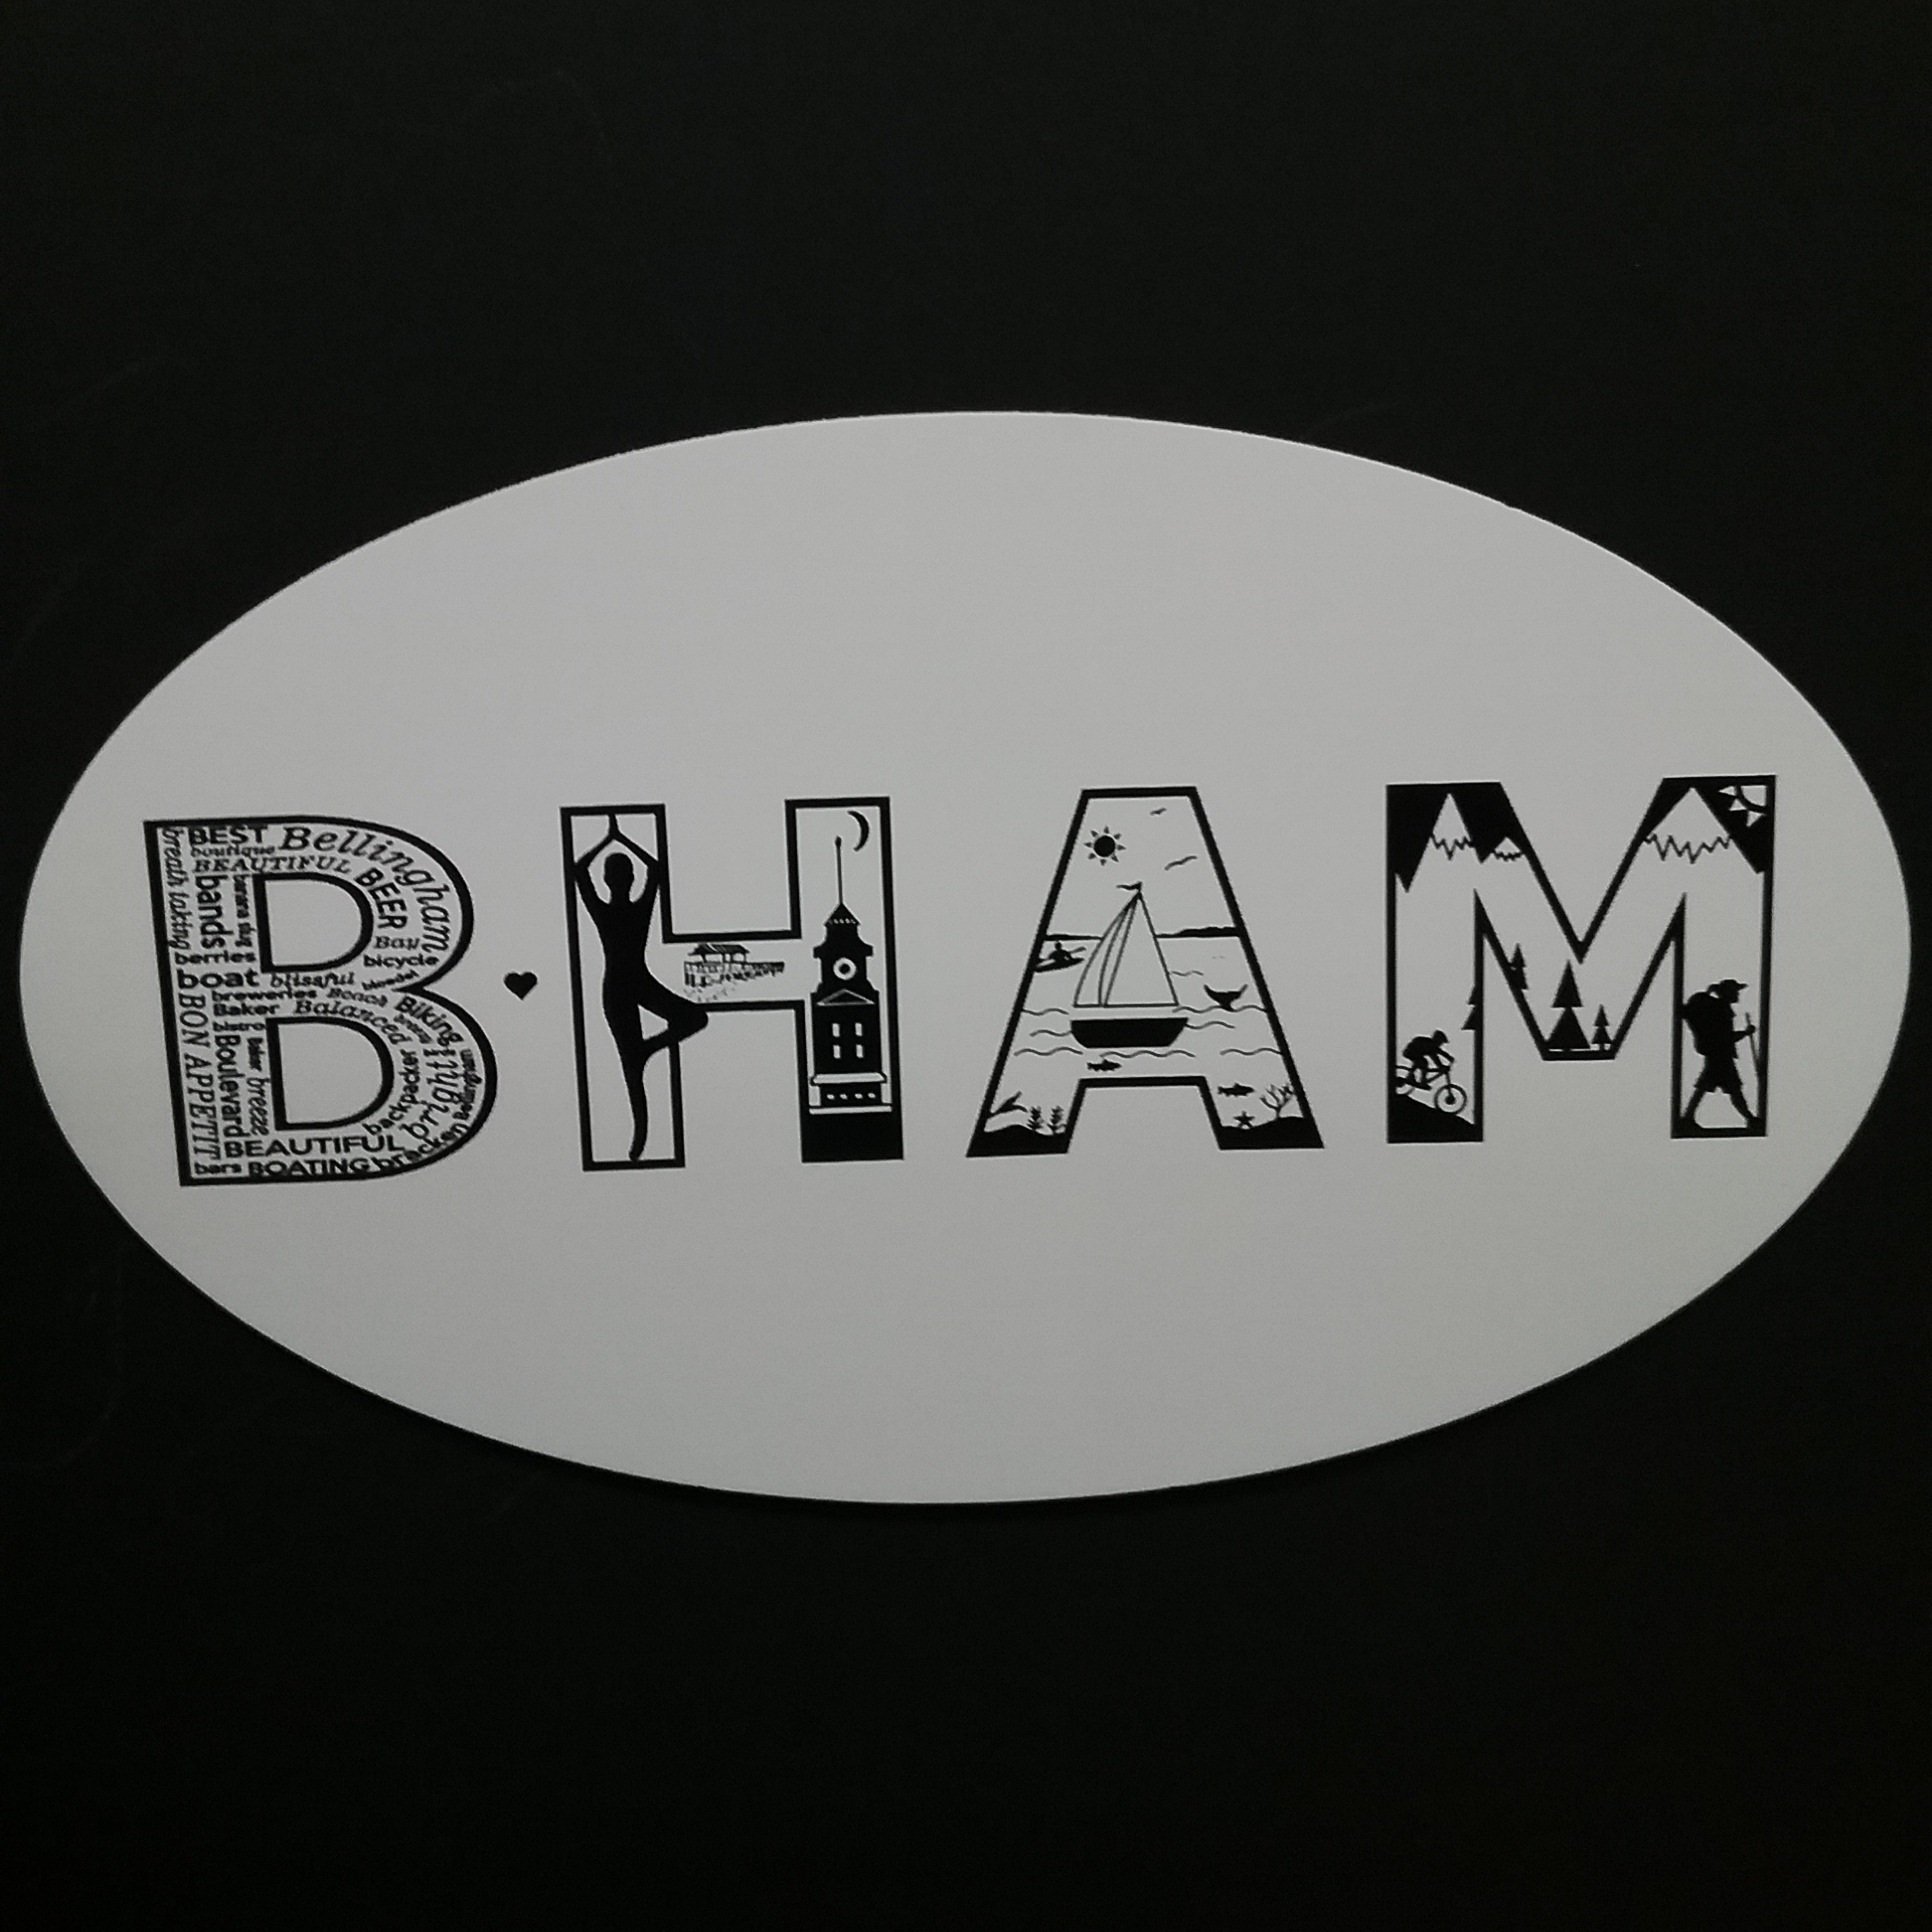 BHAM Oval Scenic Sticker